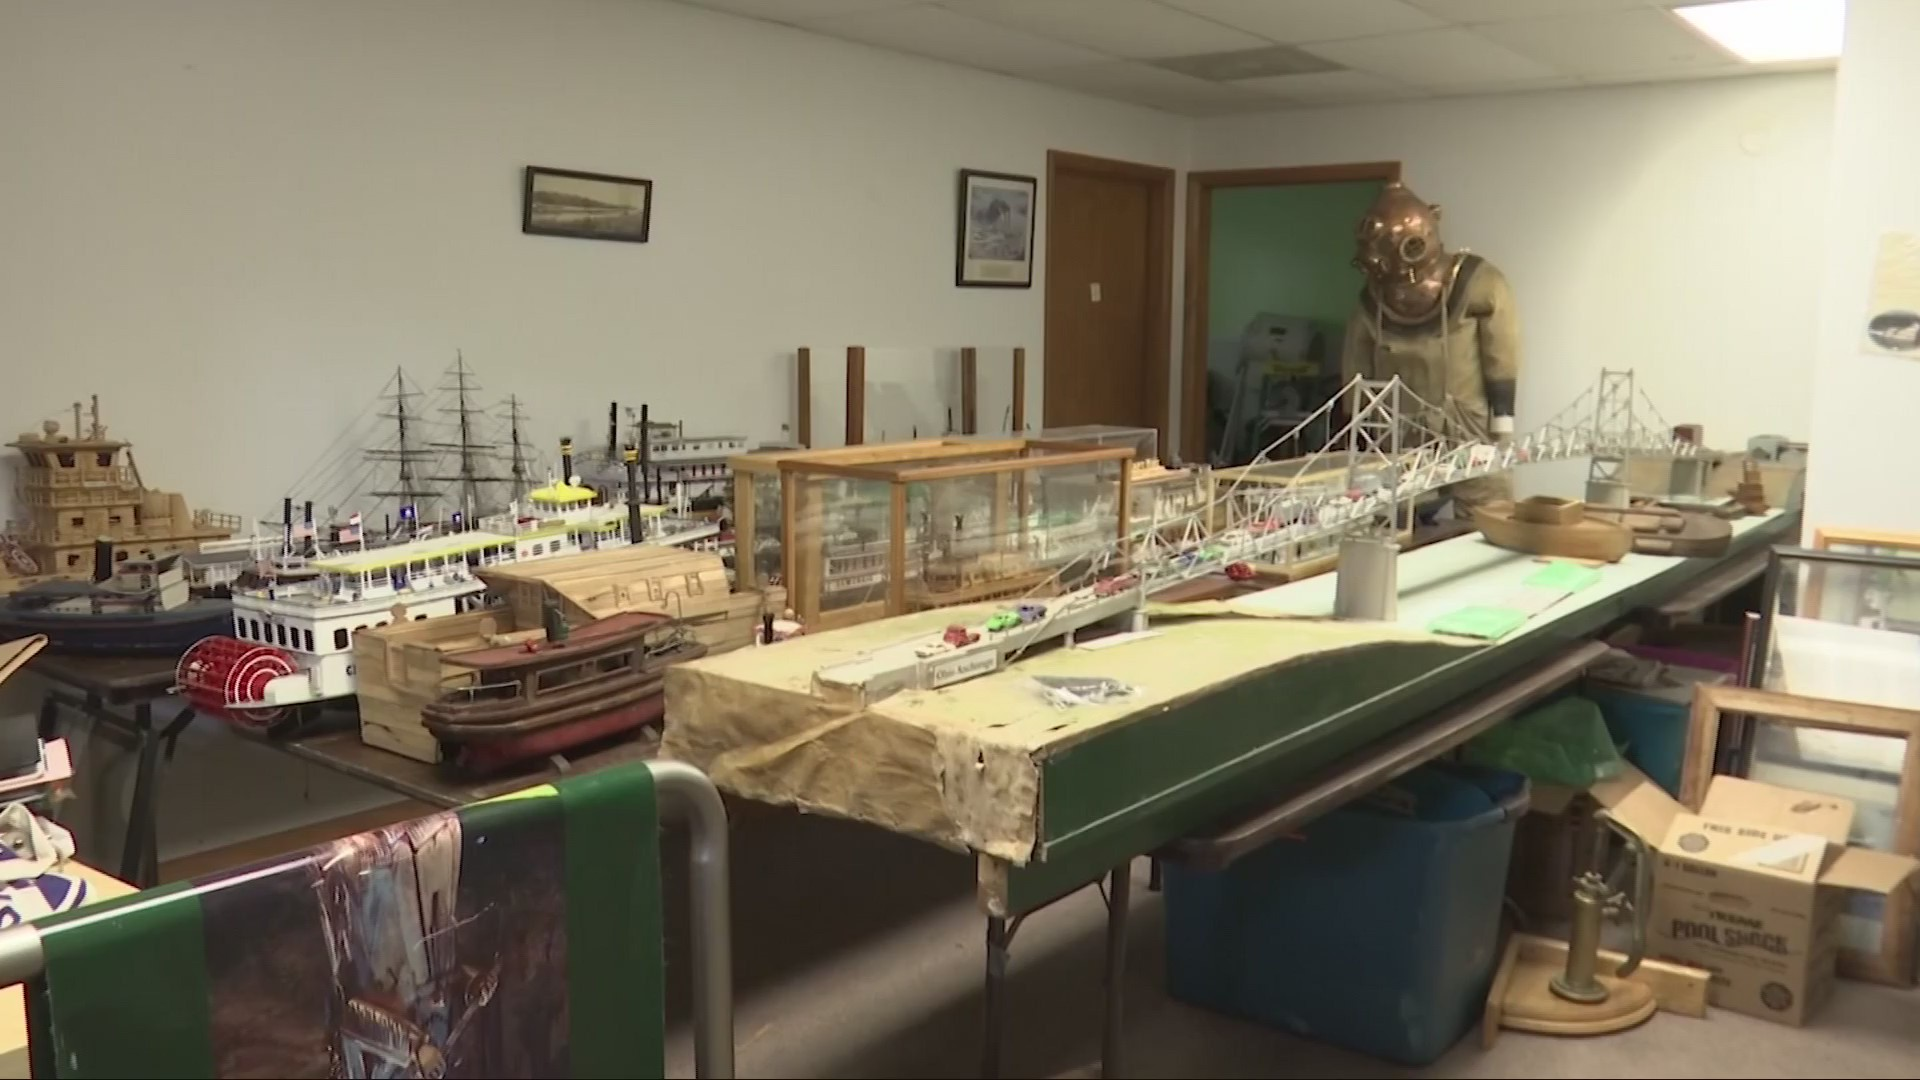 What's next: Tear down historic River Museum or build new?